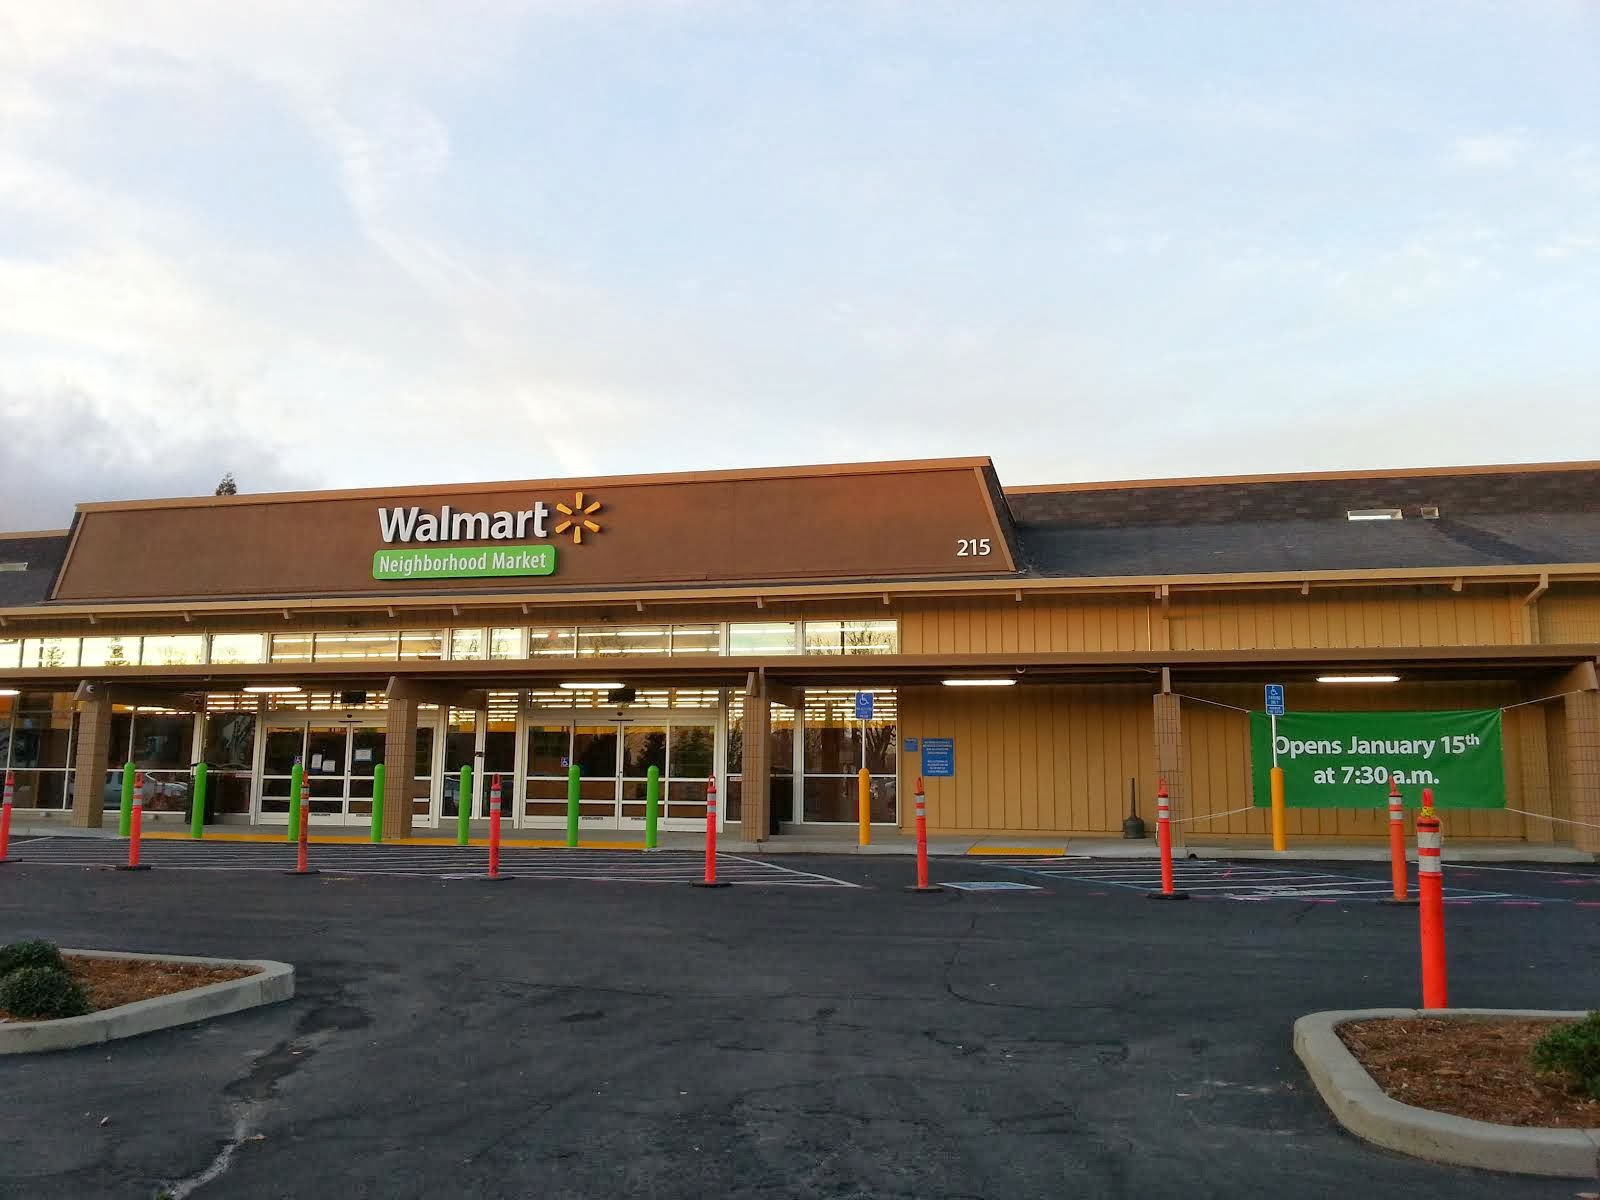 Hayden\'s Business Blog: 2nd Walmart Neighborhood Market in Woodland ...